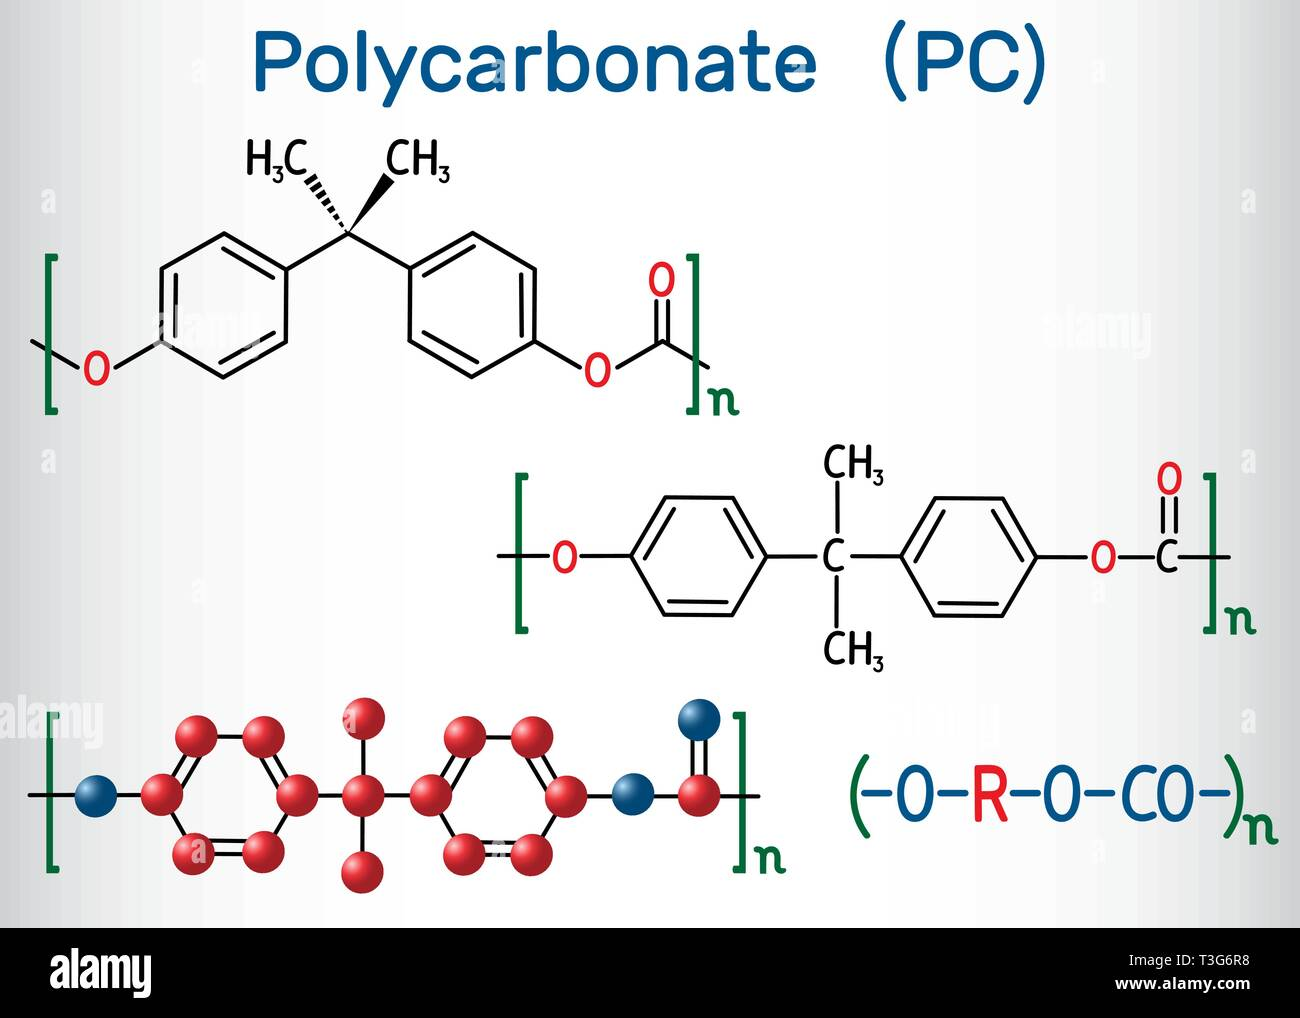 Polycarbonate (PC) thermoplastic polymer molecule. Structural chemical formula and molecule model. Vector illustration - Stock Vector